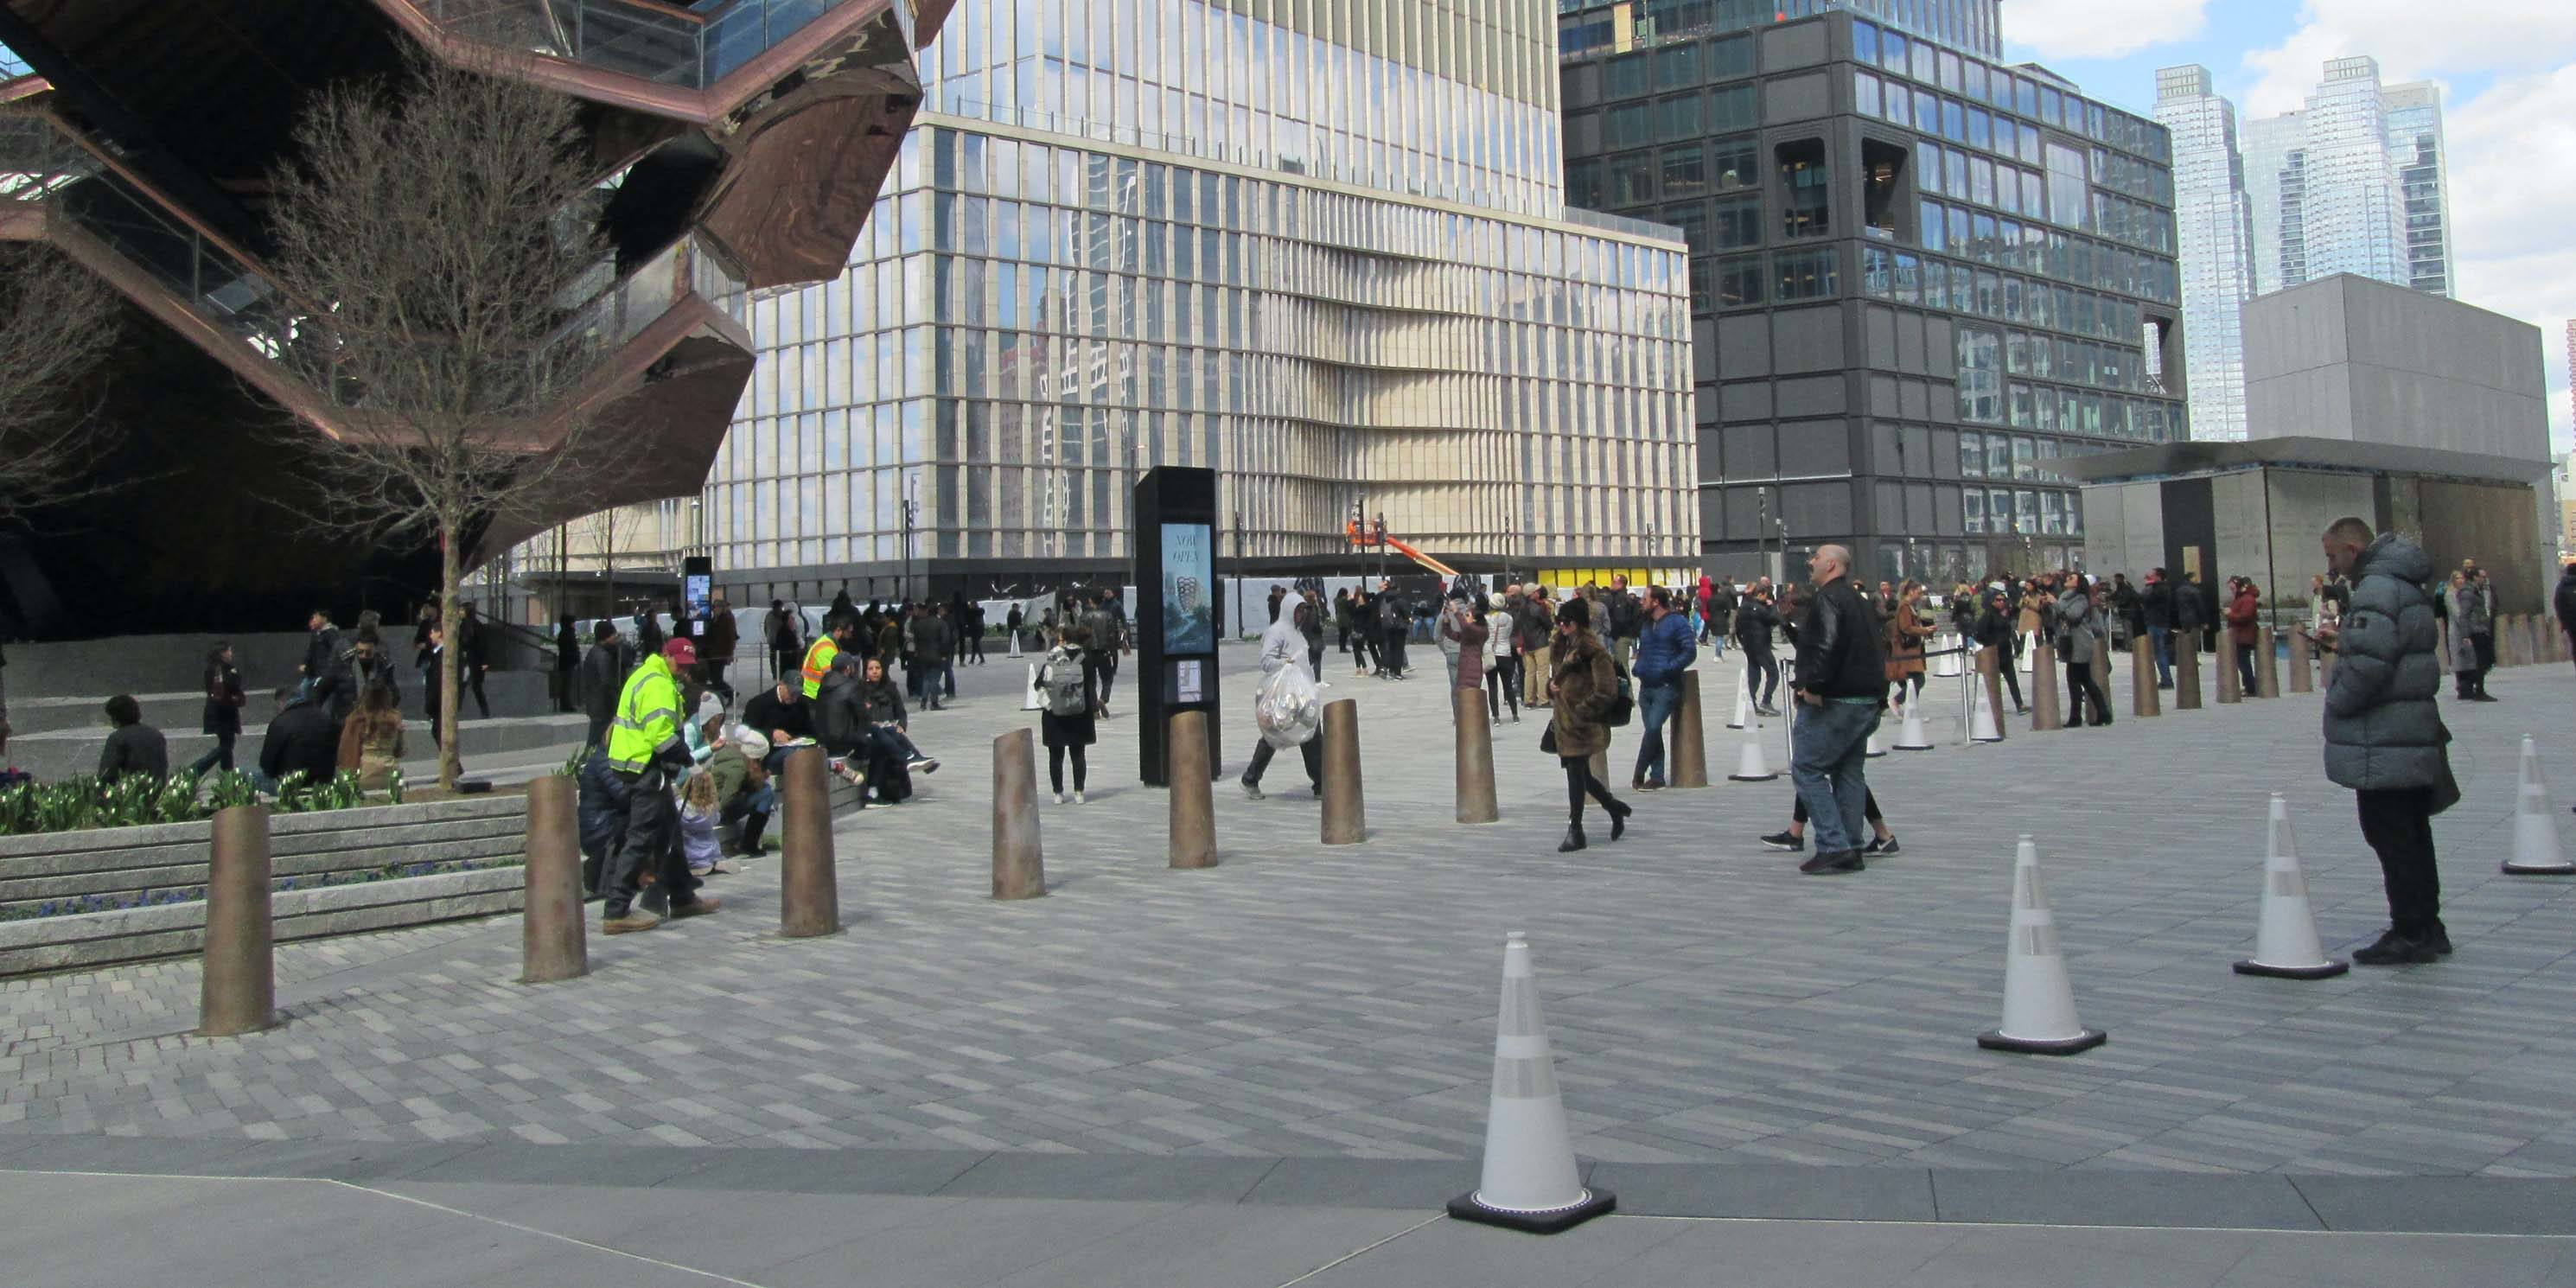 plaza with pedestrians in Hudson Yards